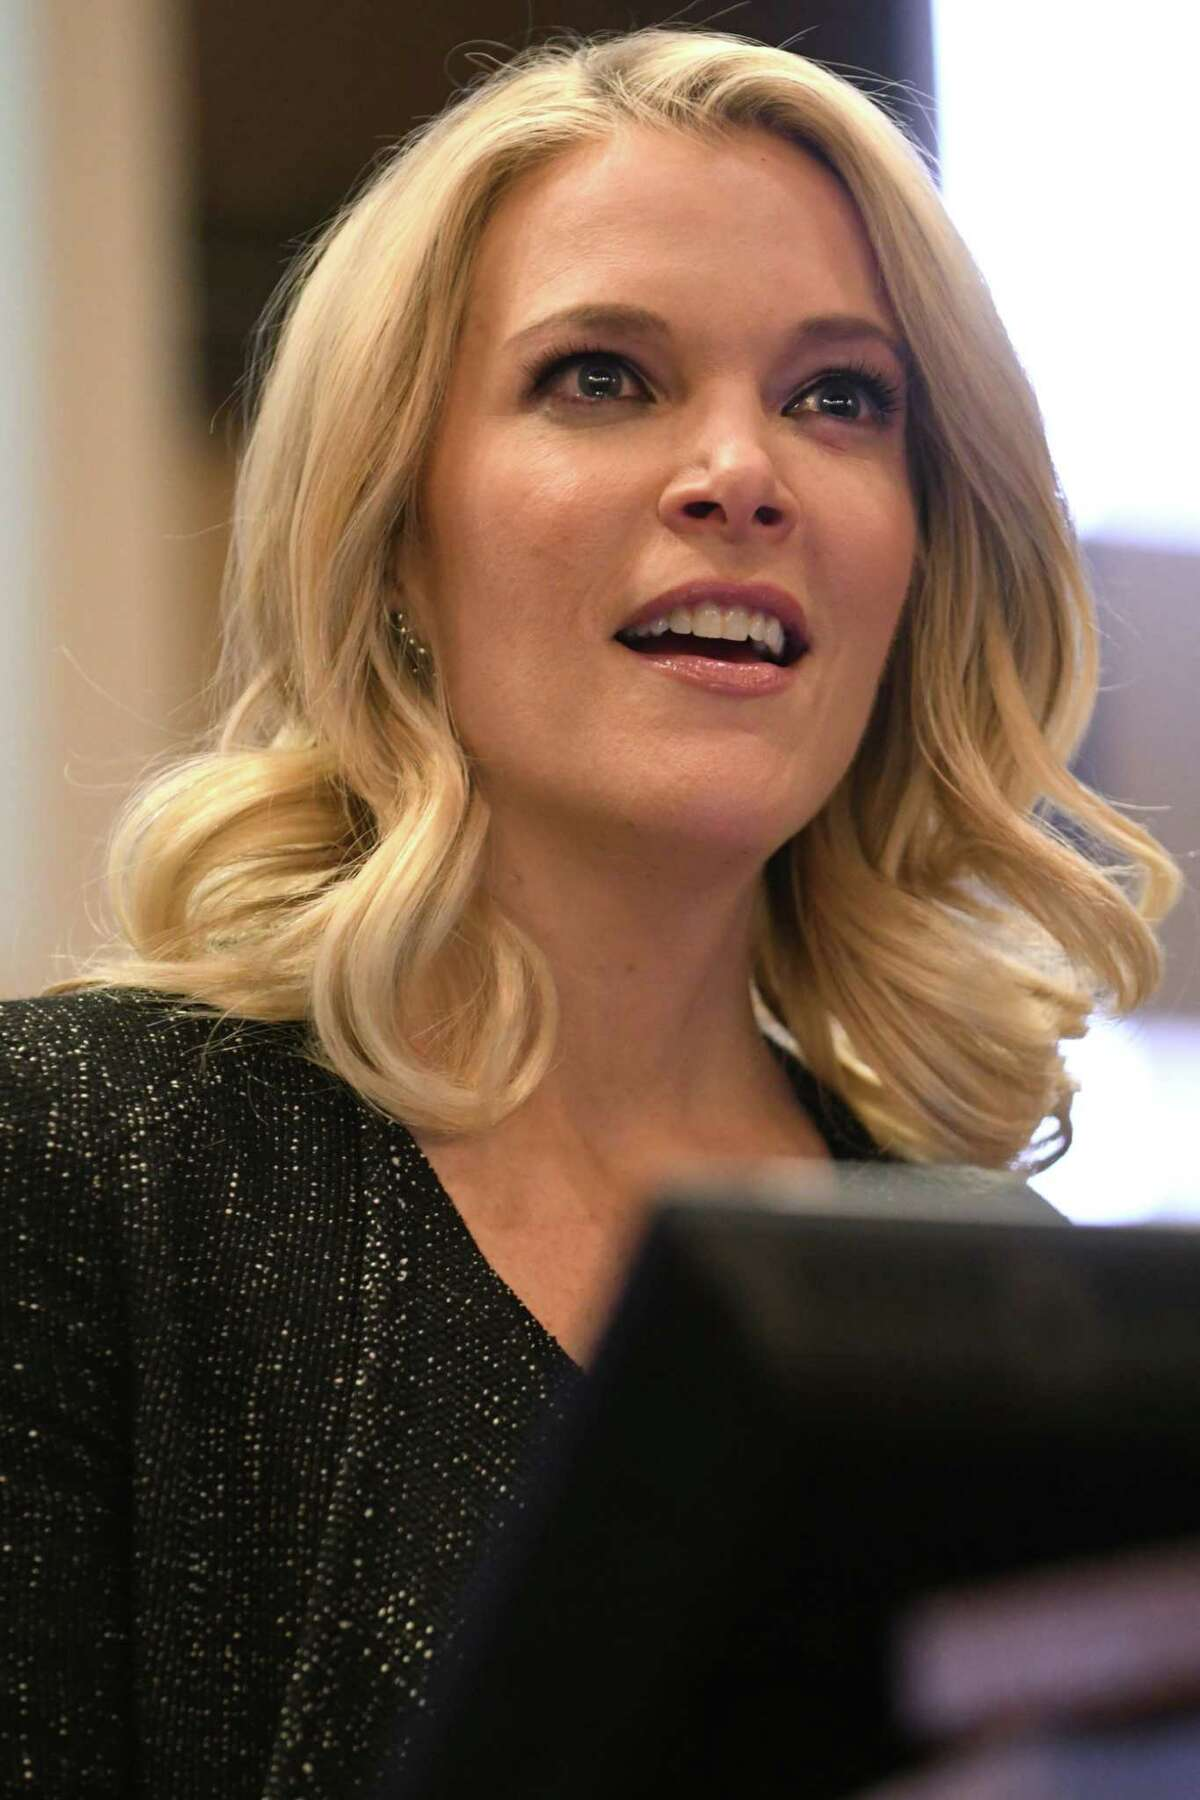 Some parents and officials in the town of Bethlehem want Megyn Kelly, Albany Law School alumna and a former NBC News anchor, removed from the high school's Hall of Fame. (Lori Van Buren / Times Union)